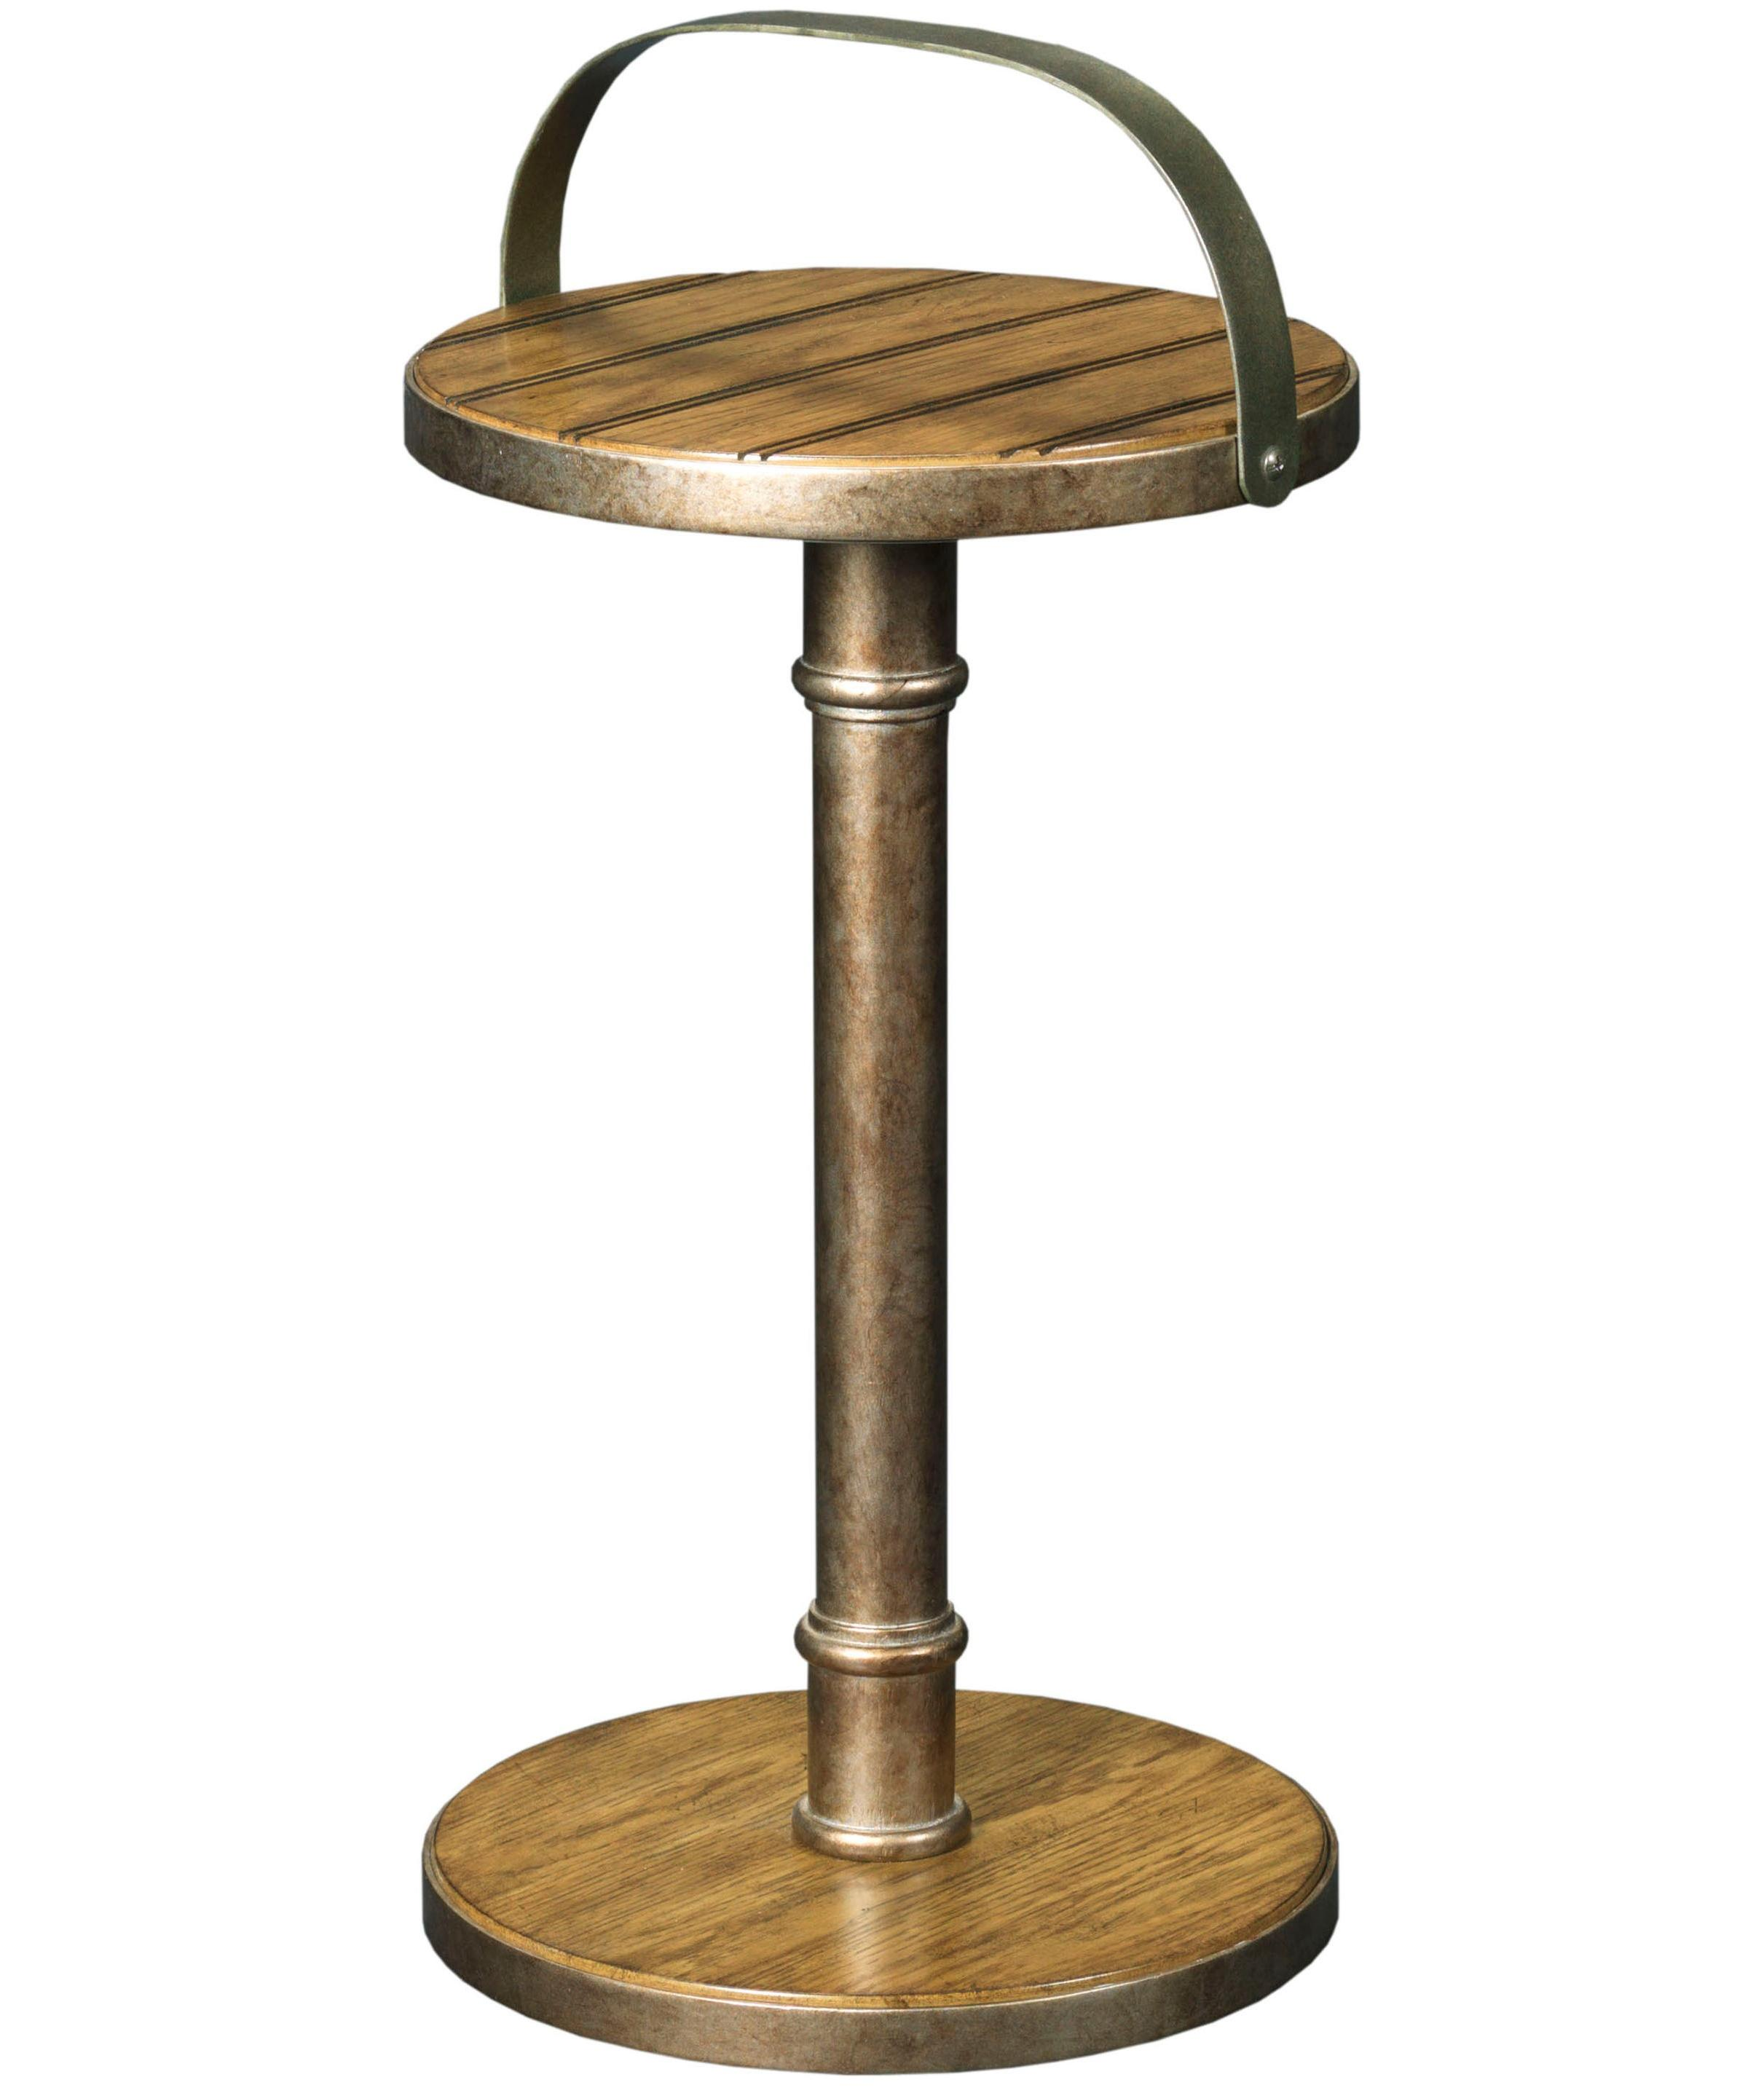 Broyhill Furniture New Vintage Pail Handle Accent Table - Item Number: 4808-007